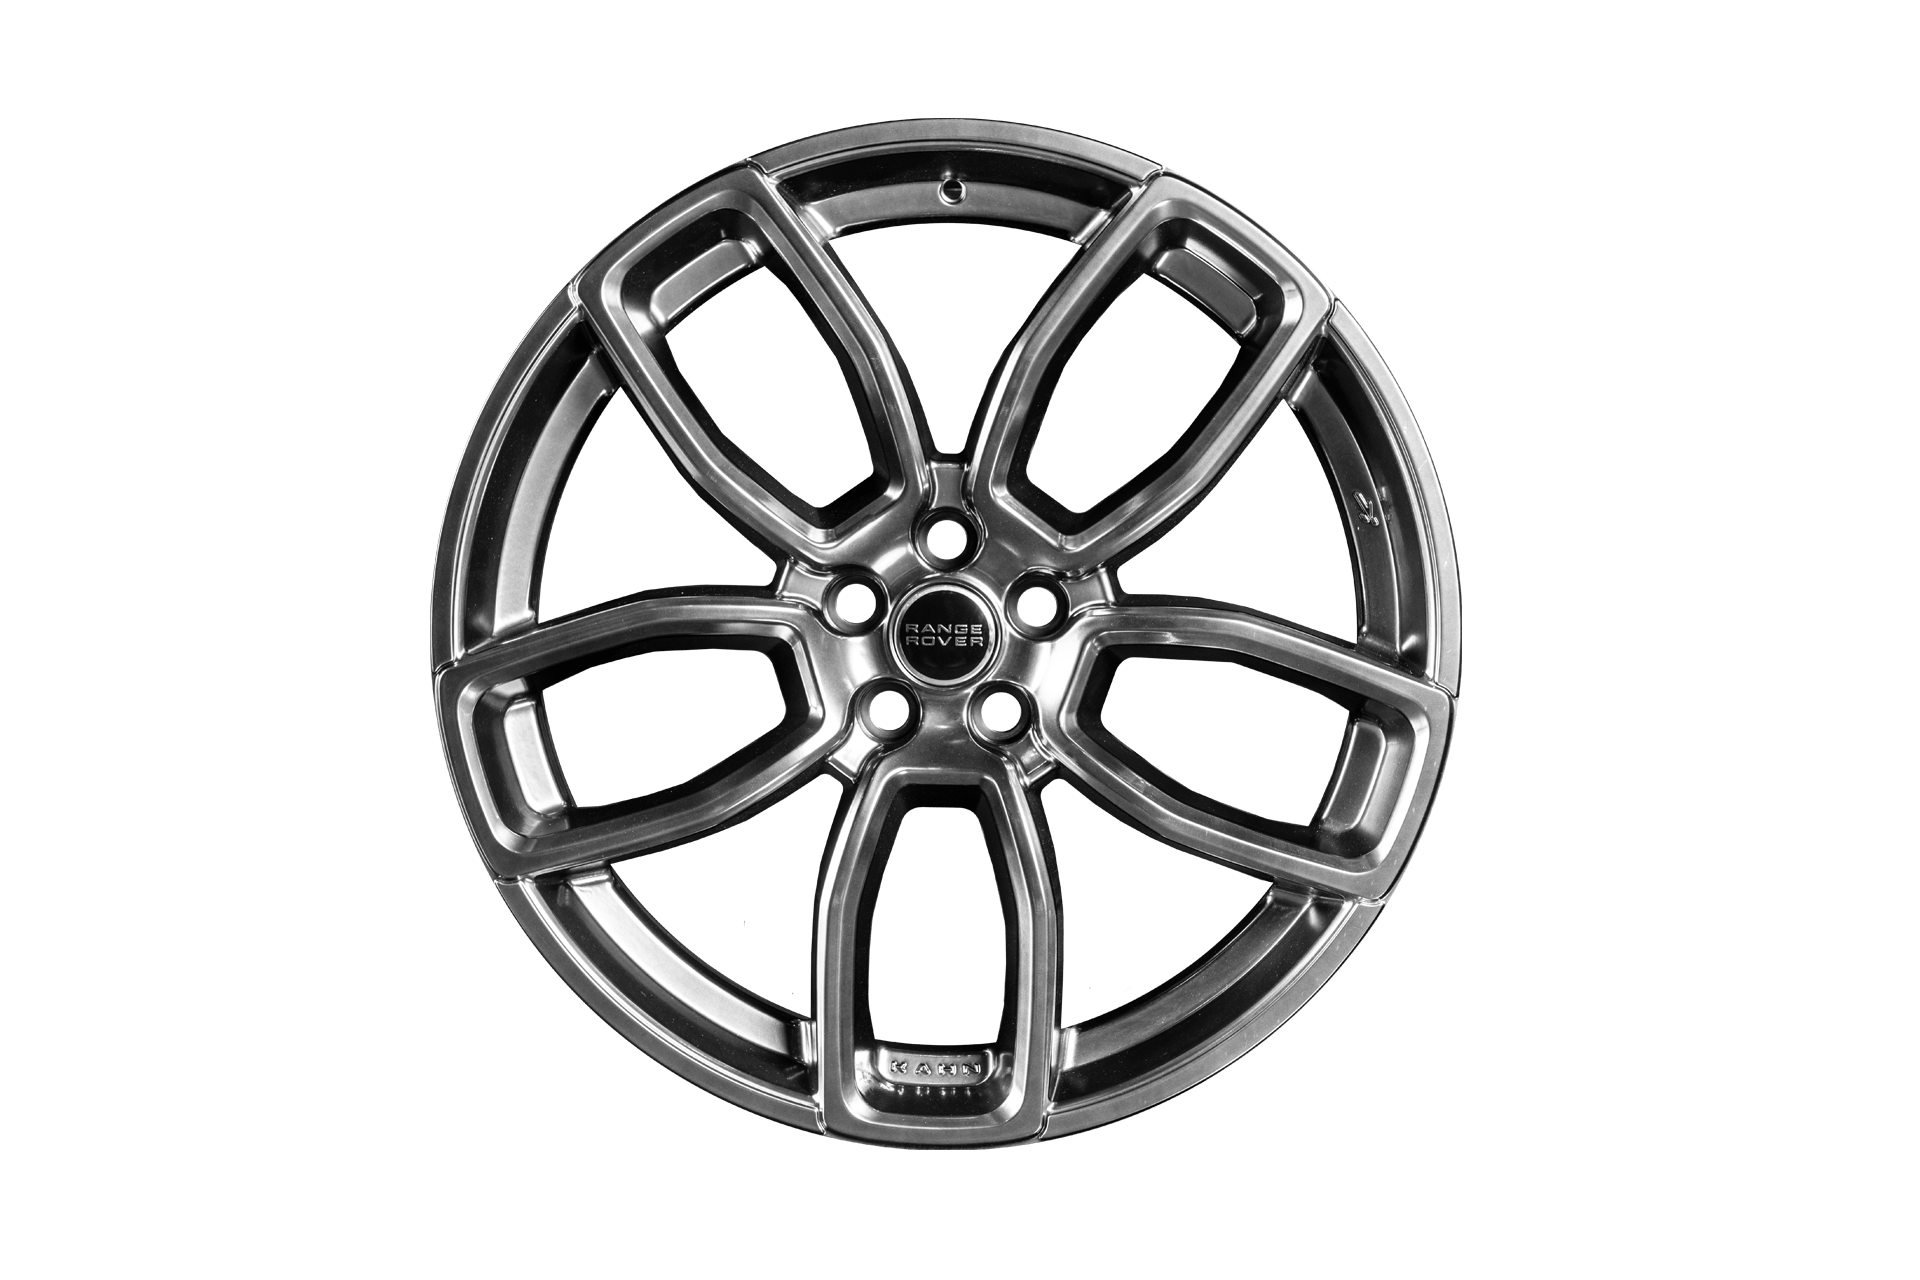 Range Rover Sport (2018-Present) 600Le Light Alloy Wheels by Kahn - Image 2307